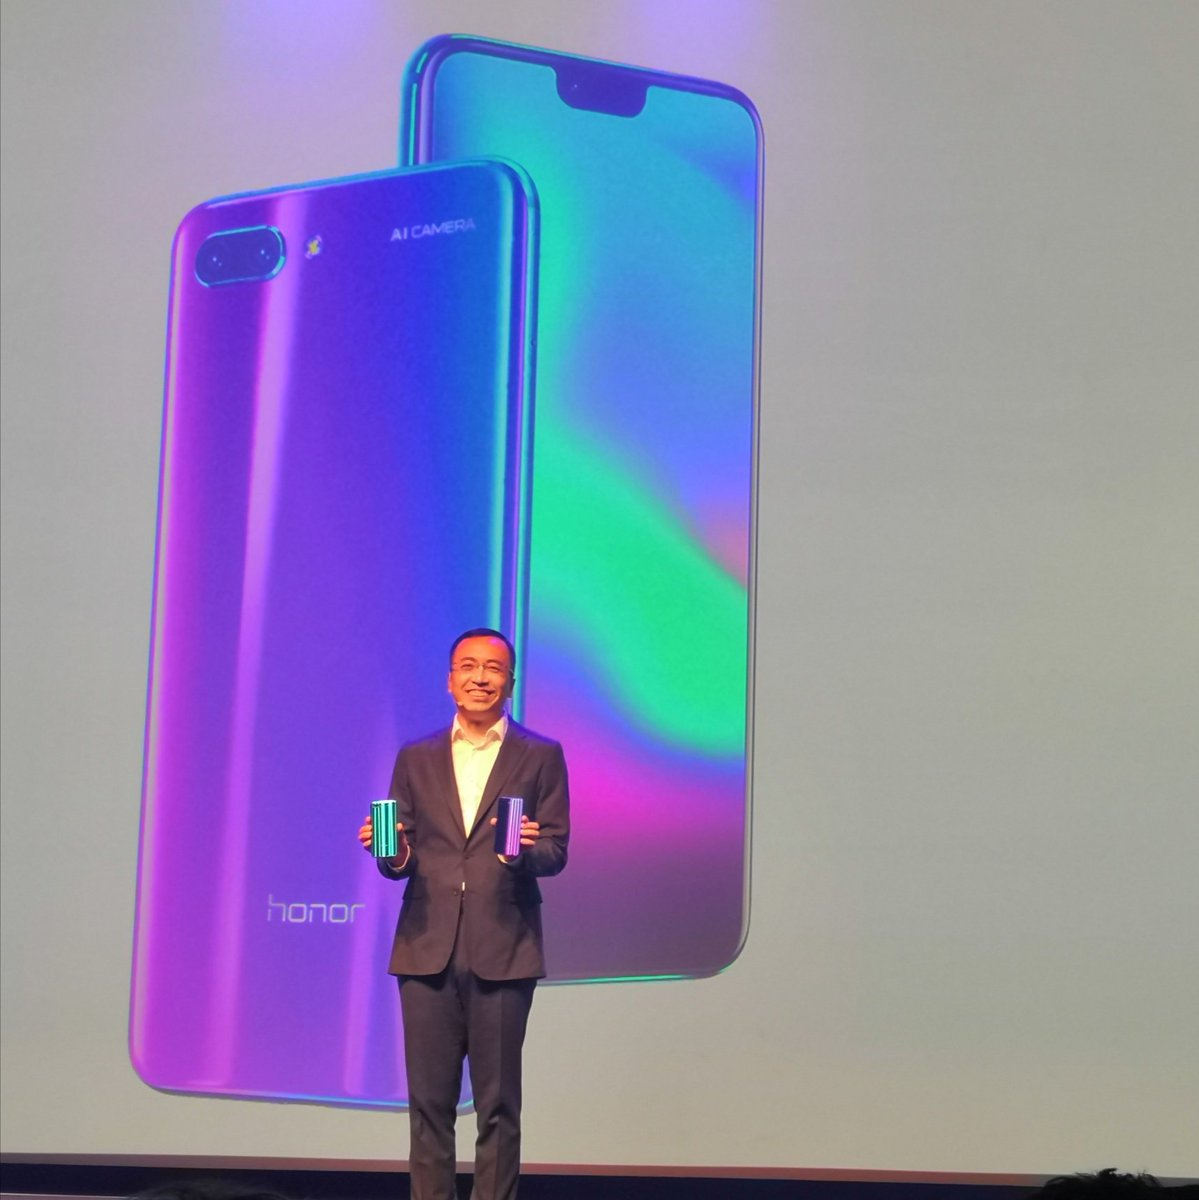 Its the #Honor10! Two very cool colours, Phantom Blue and Phantom Green.